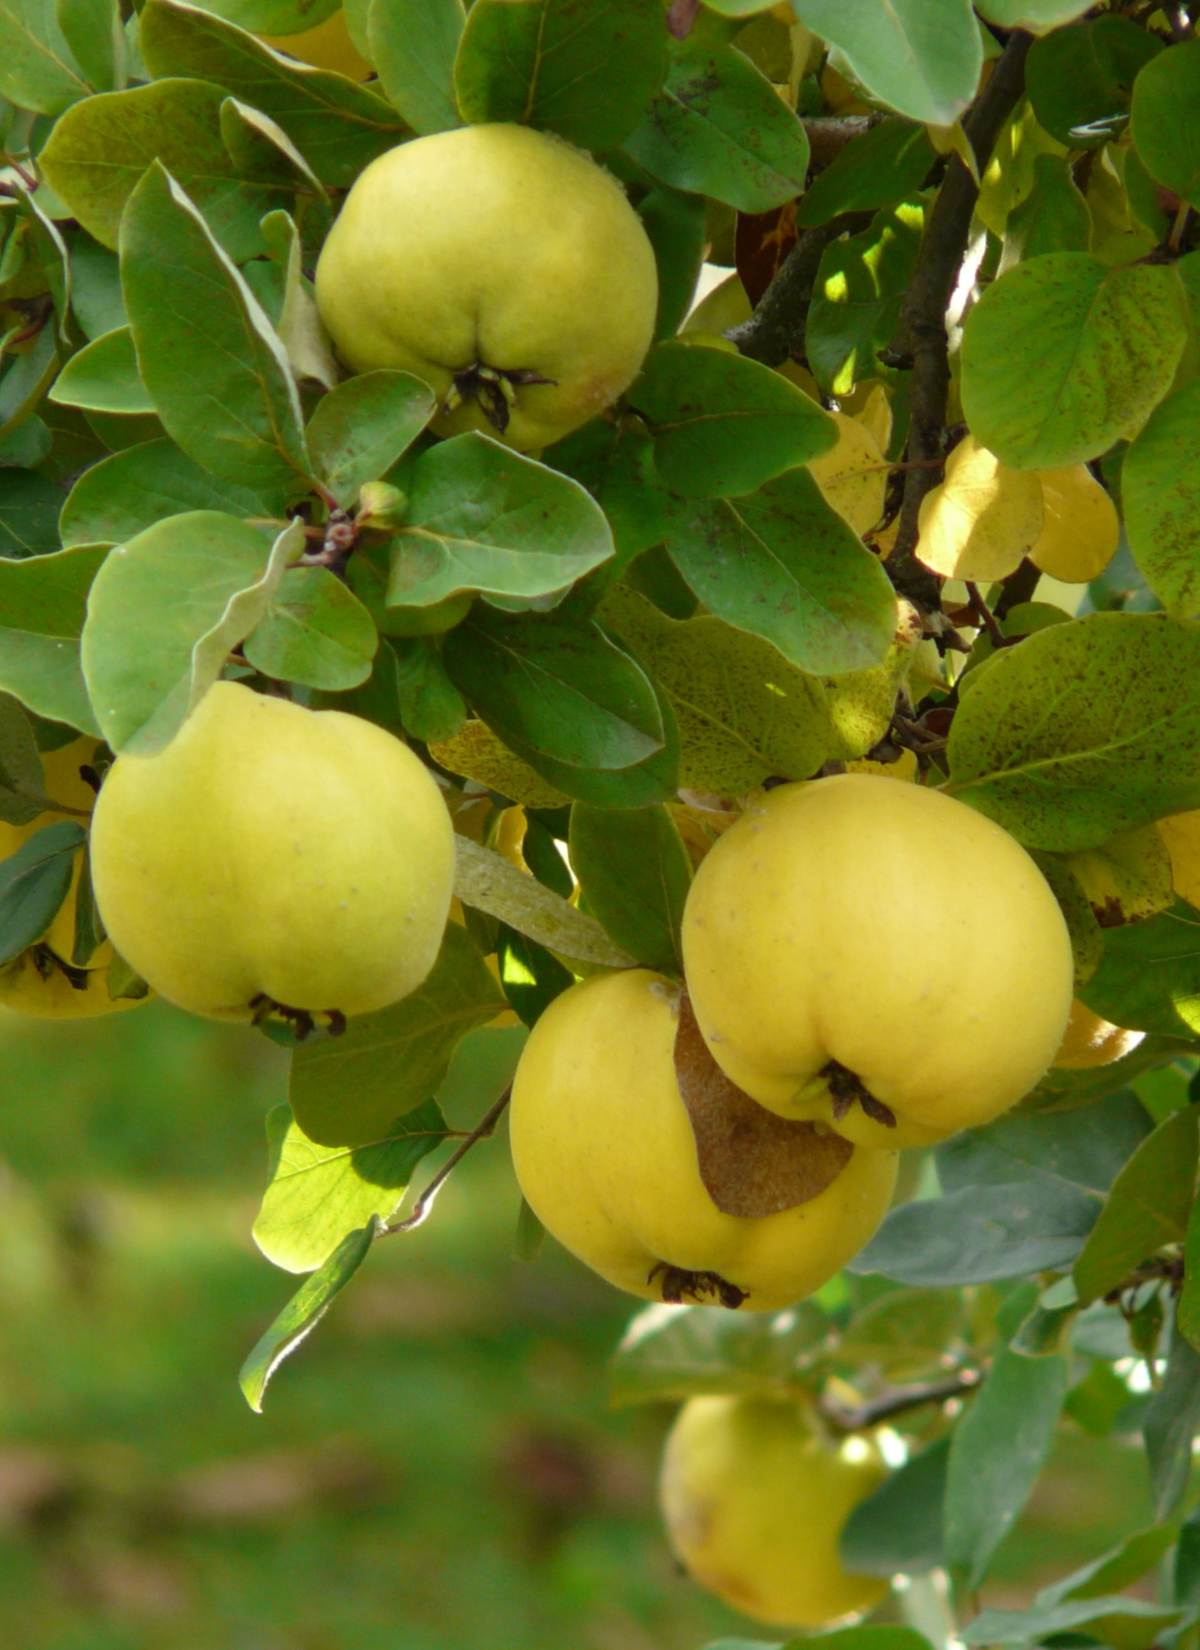 Quince tree with fruit on the branch